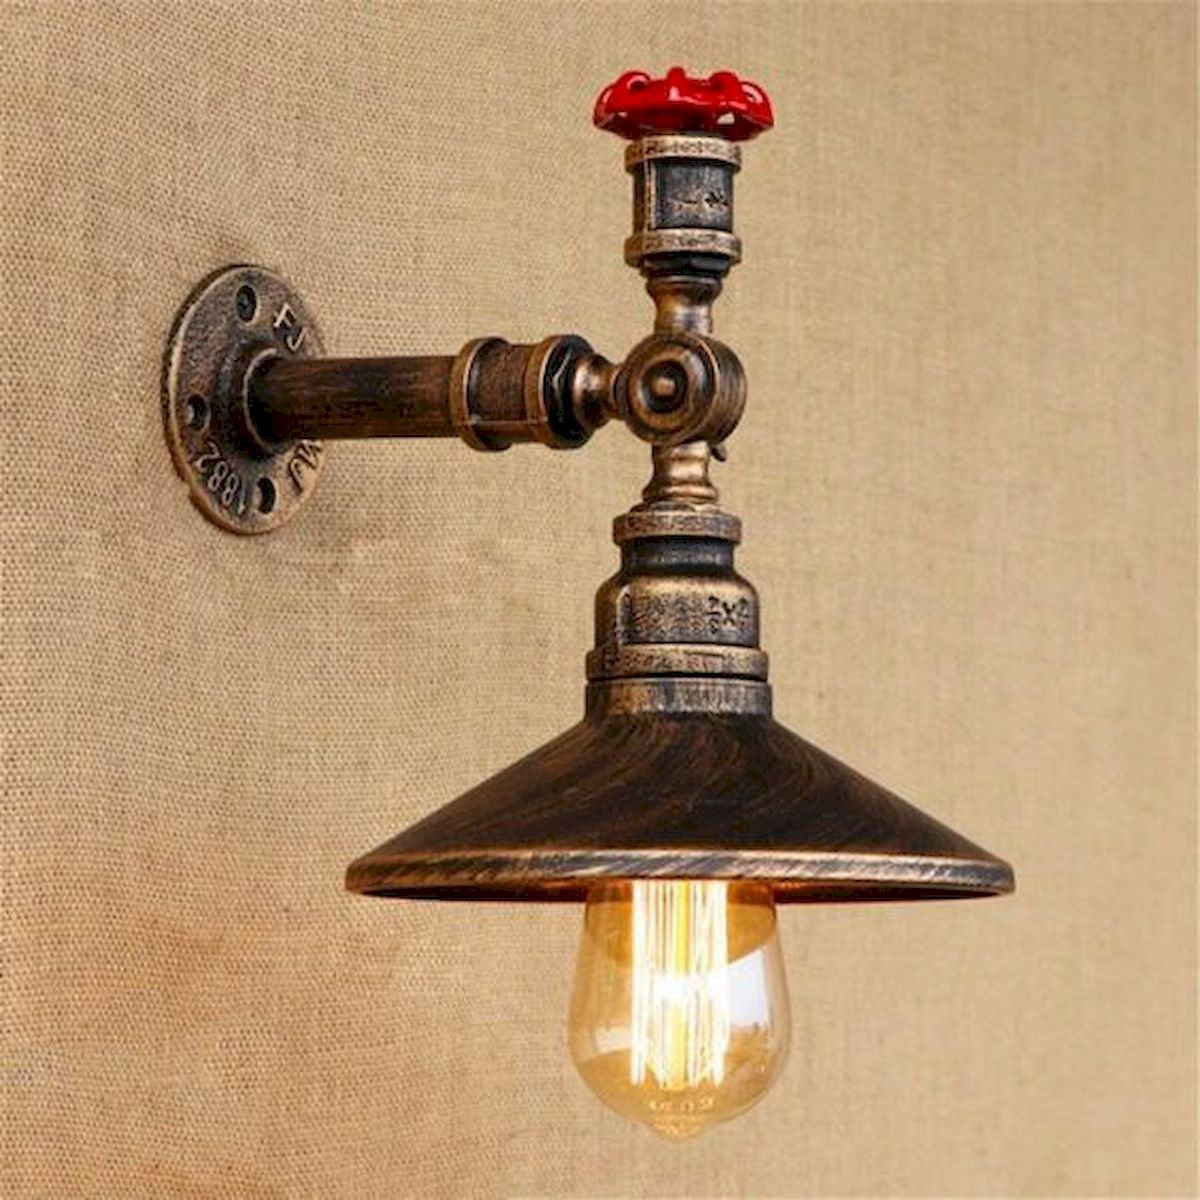 40 Fantastic DIY Lamps Decoration Ideas for Your Home (22)